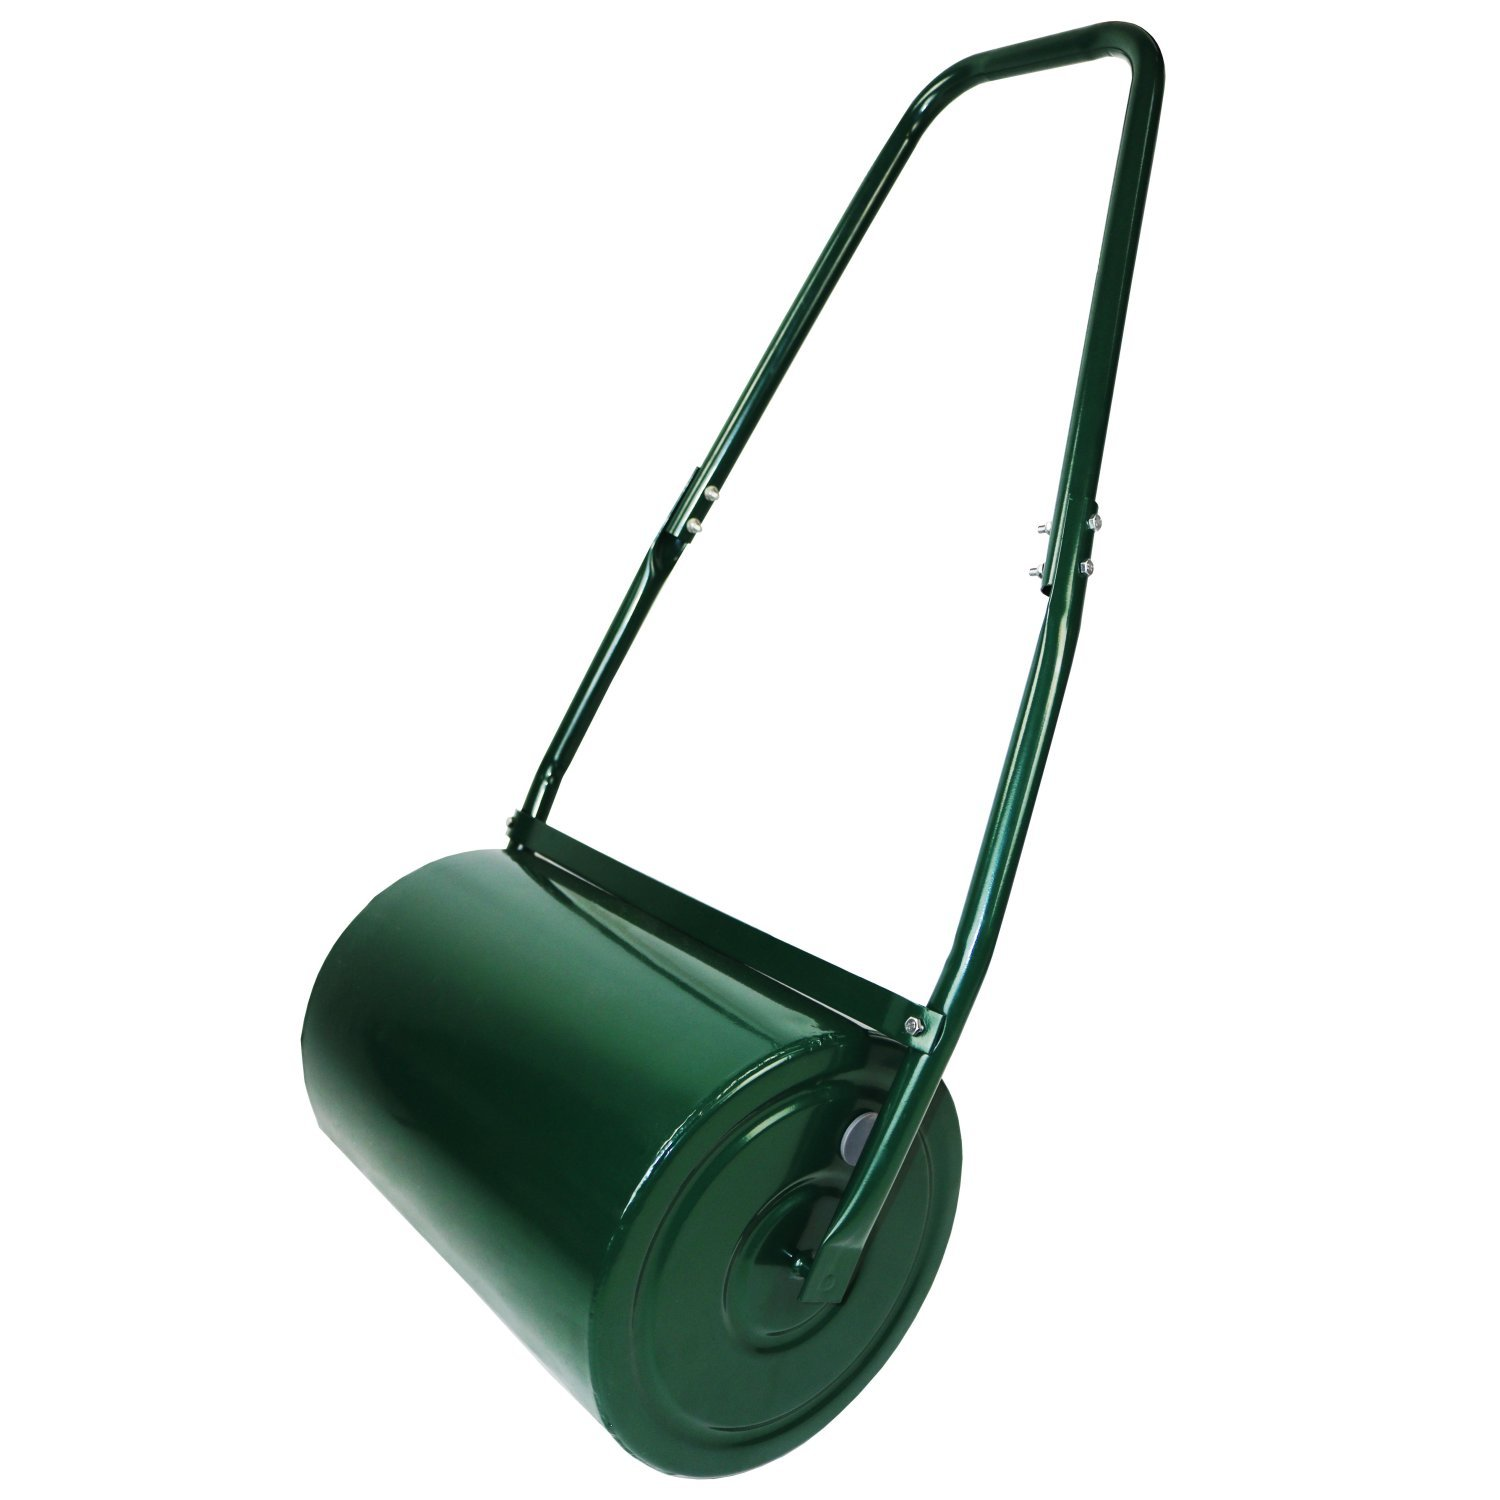 Water Filled Garden Lawn Roller 2499 Oypla Stocking the